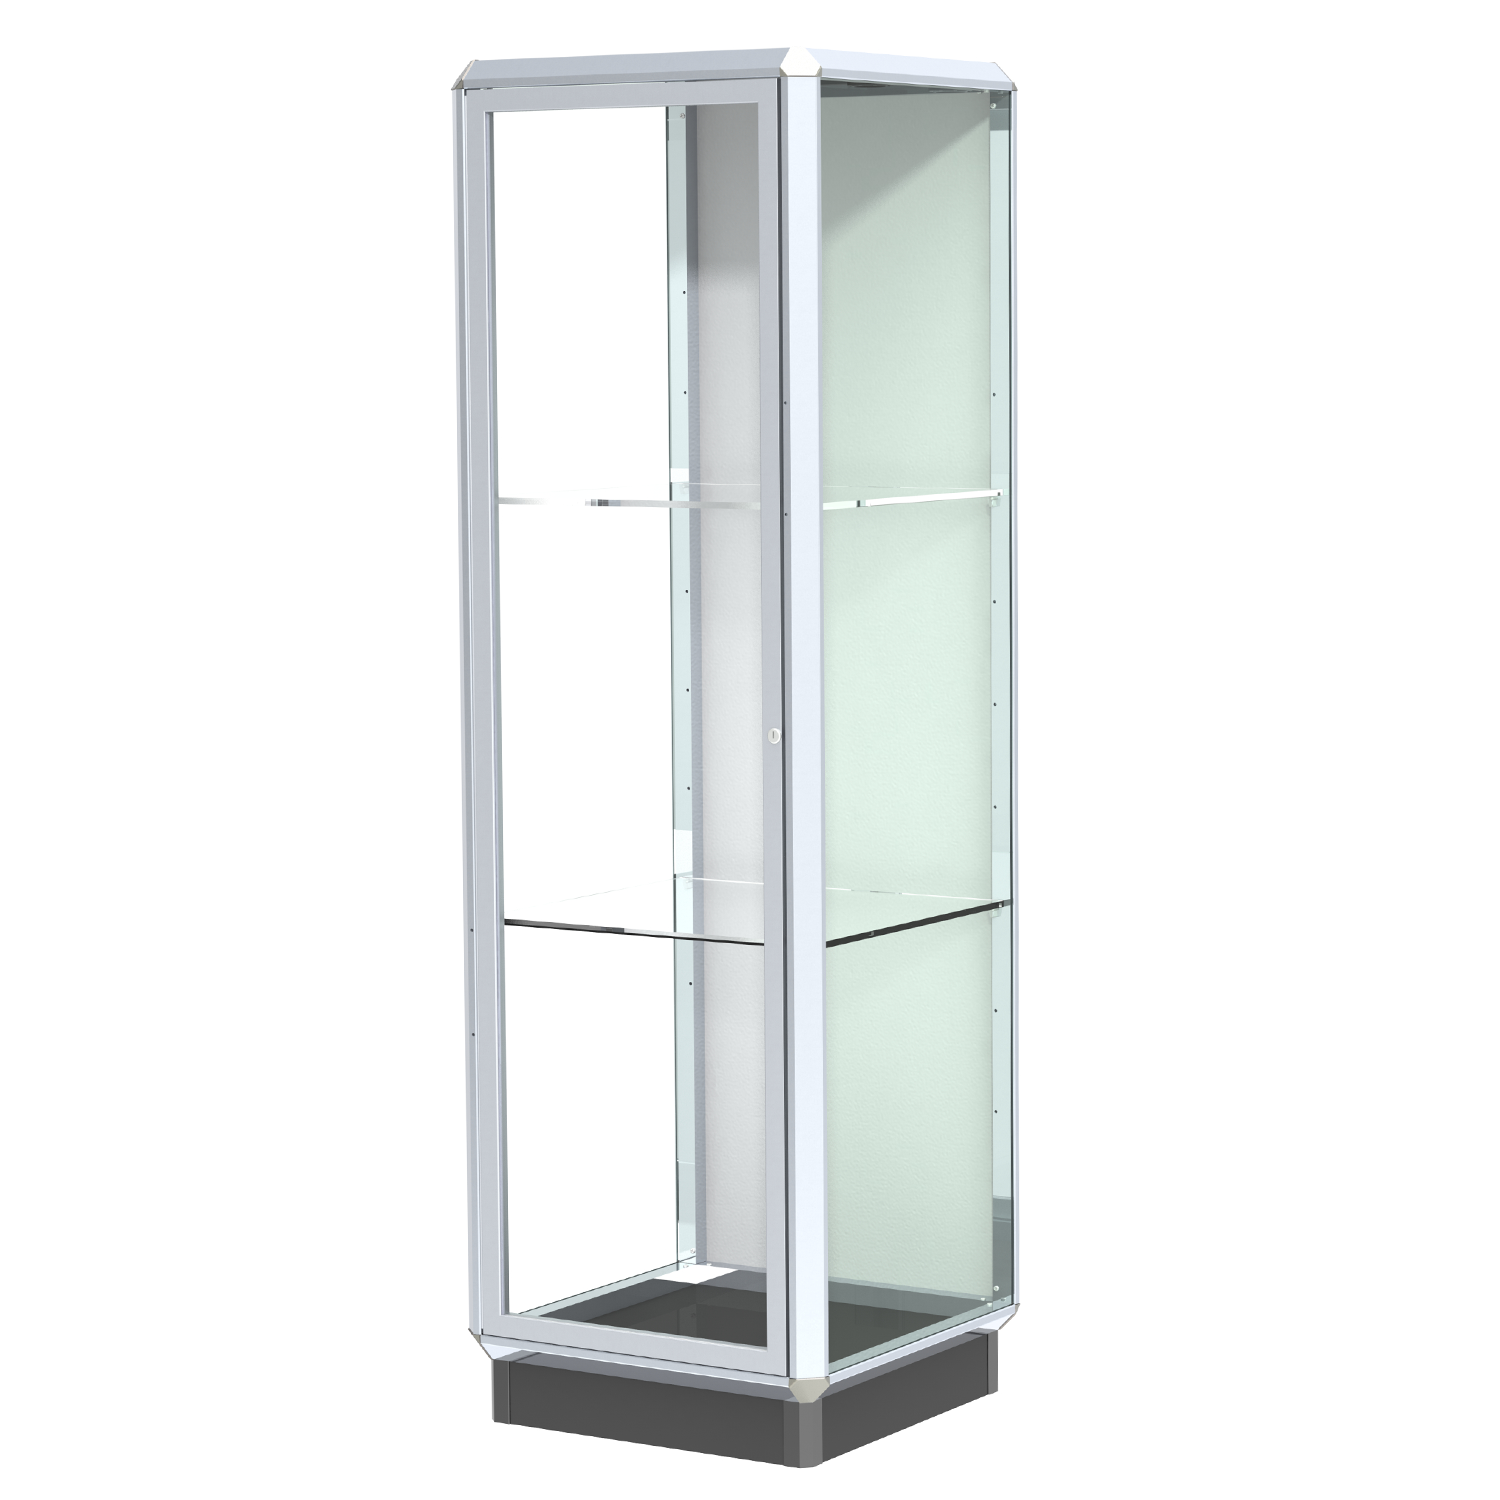 Chrome 2 Aluminum Frame Floor Standing Display Case With 2 Adjustable Shelves Locking Doors And L Buy Acrylic Displays Shop Acrylic Pop